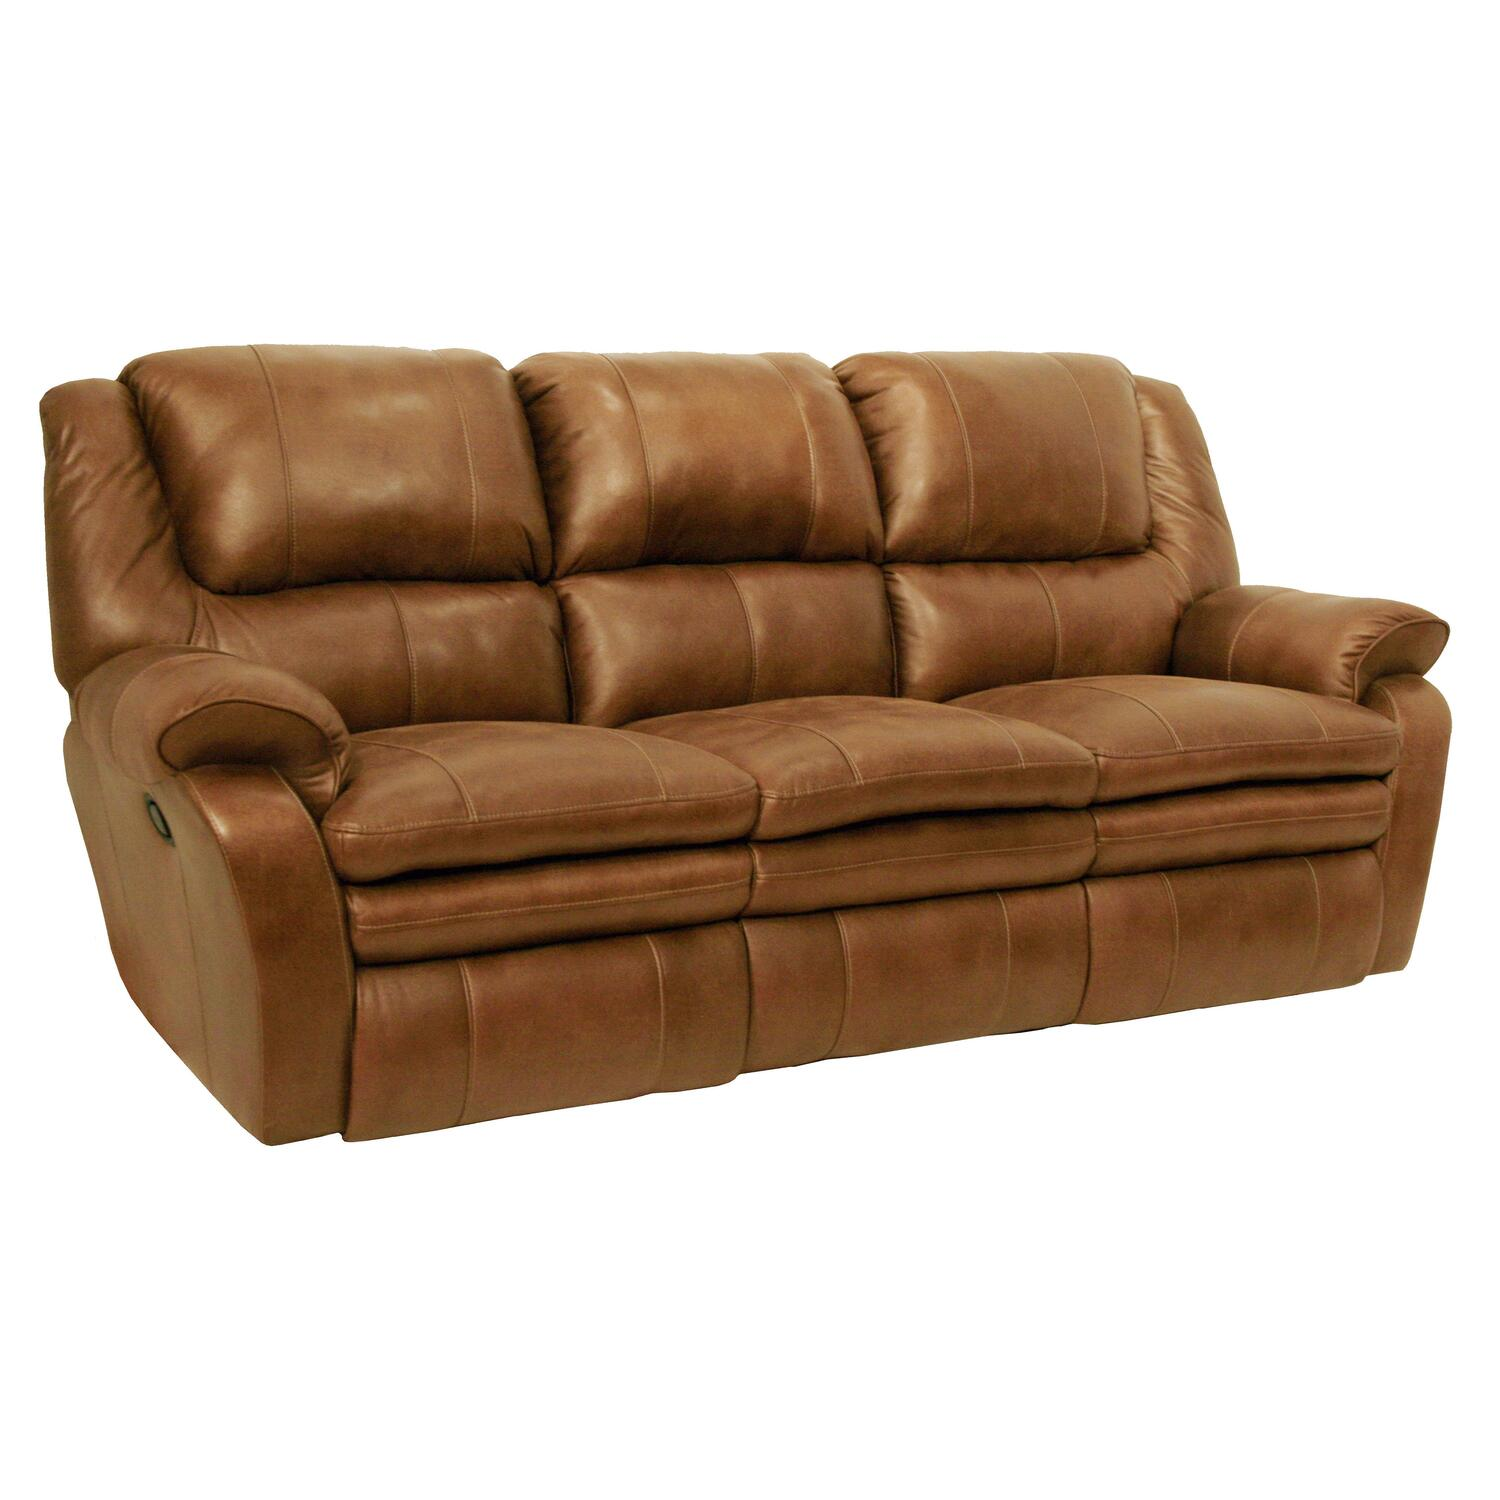 Catnapper Cordoba Reclining Sofa By Oj Commerce 3361